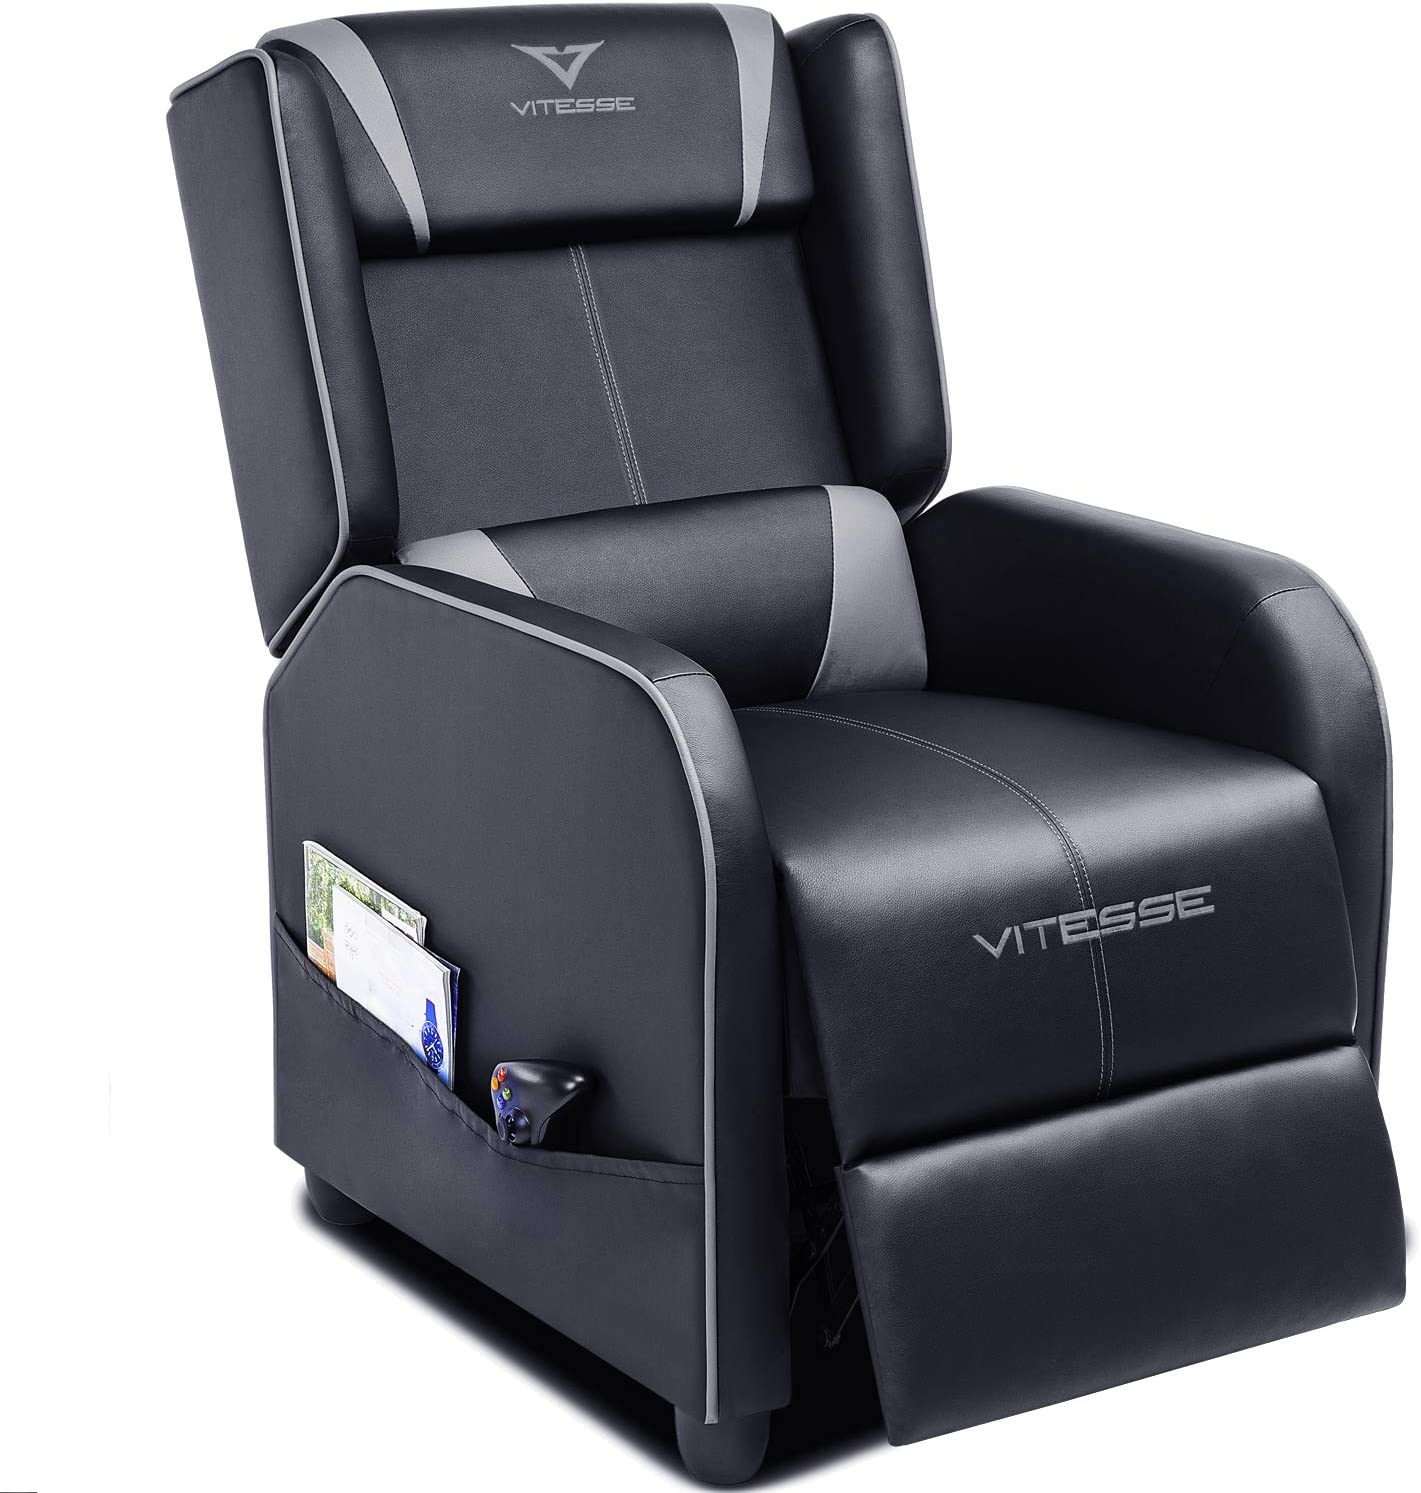 Vitesse Gaming Recliner Chair